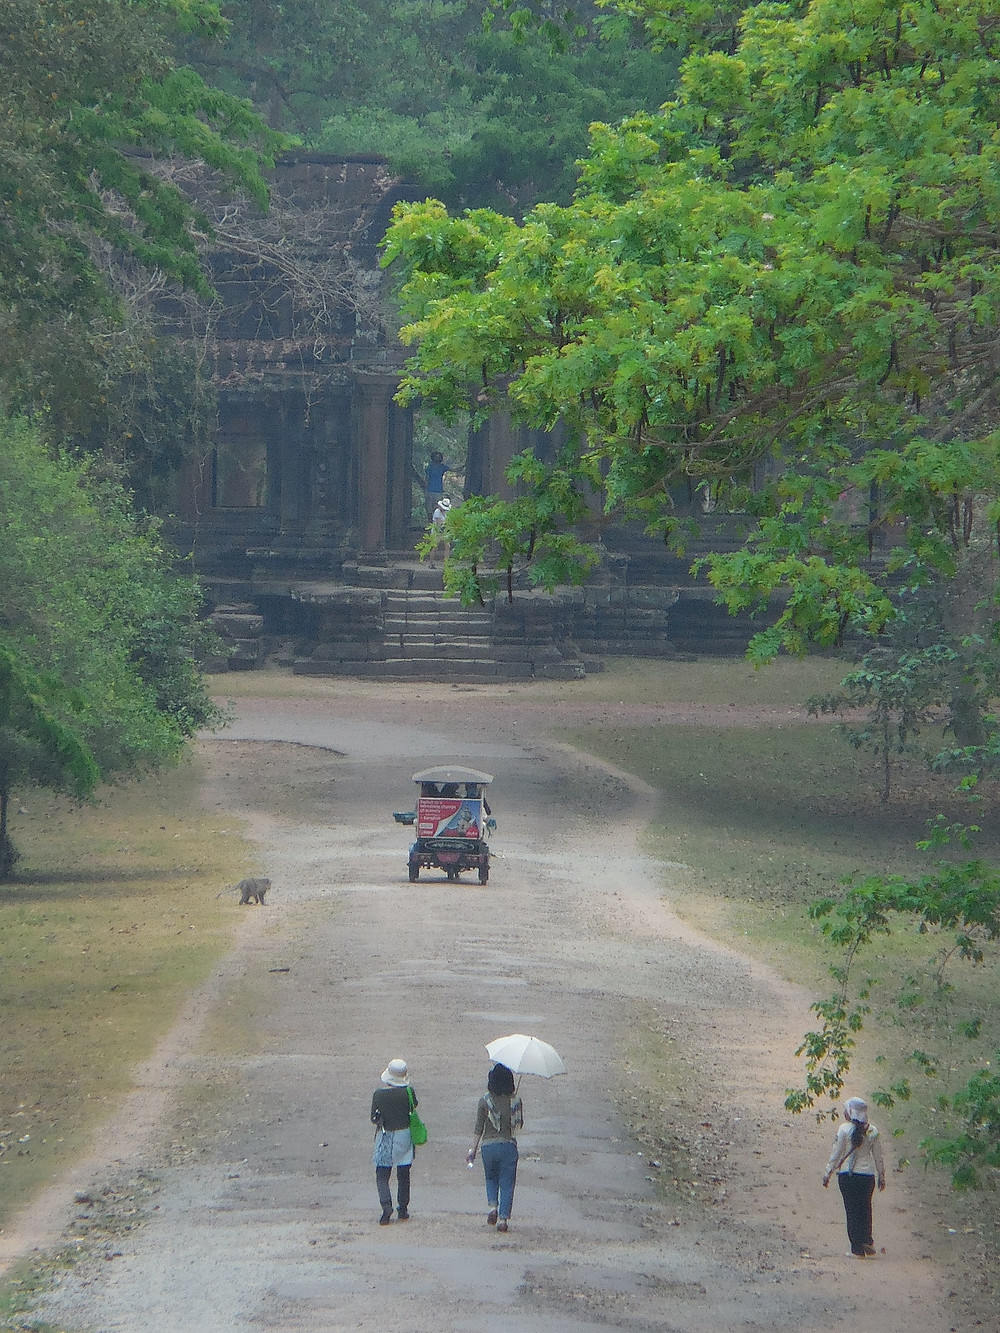 Looking east from the back of Angkor Wat. Photo taken mid-day.